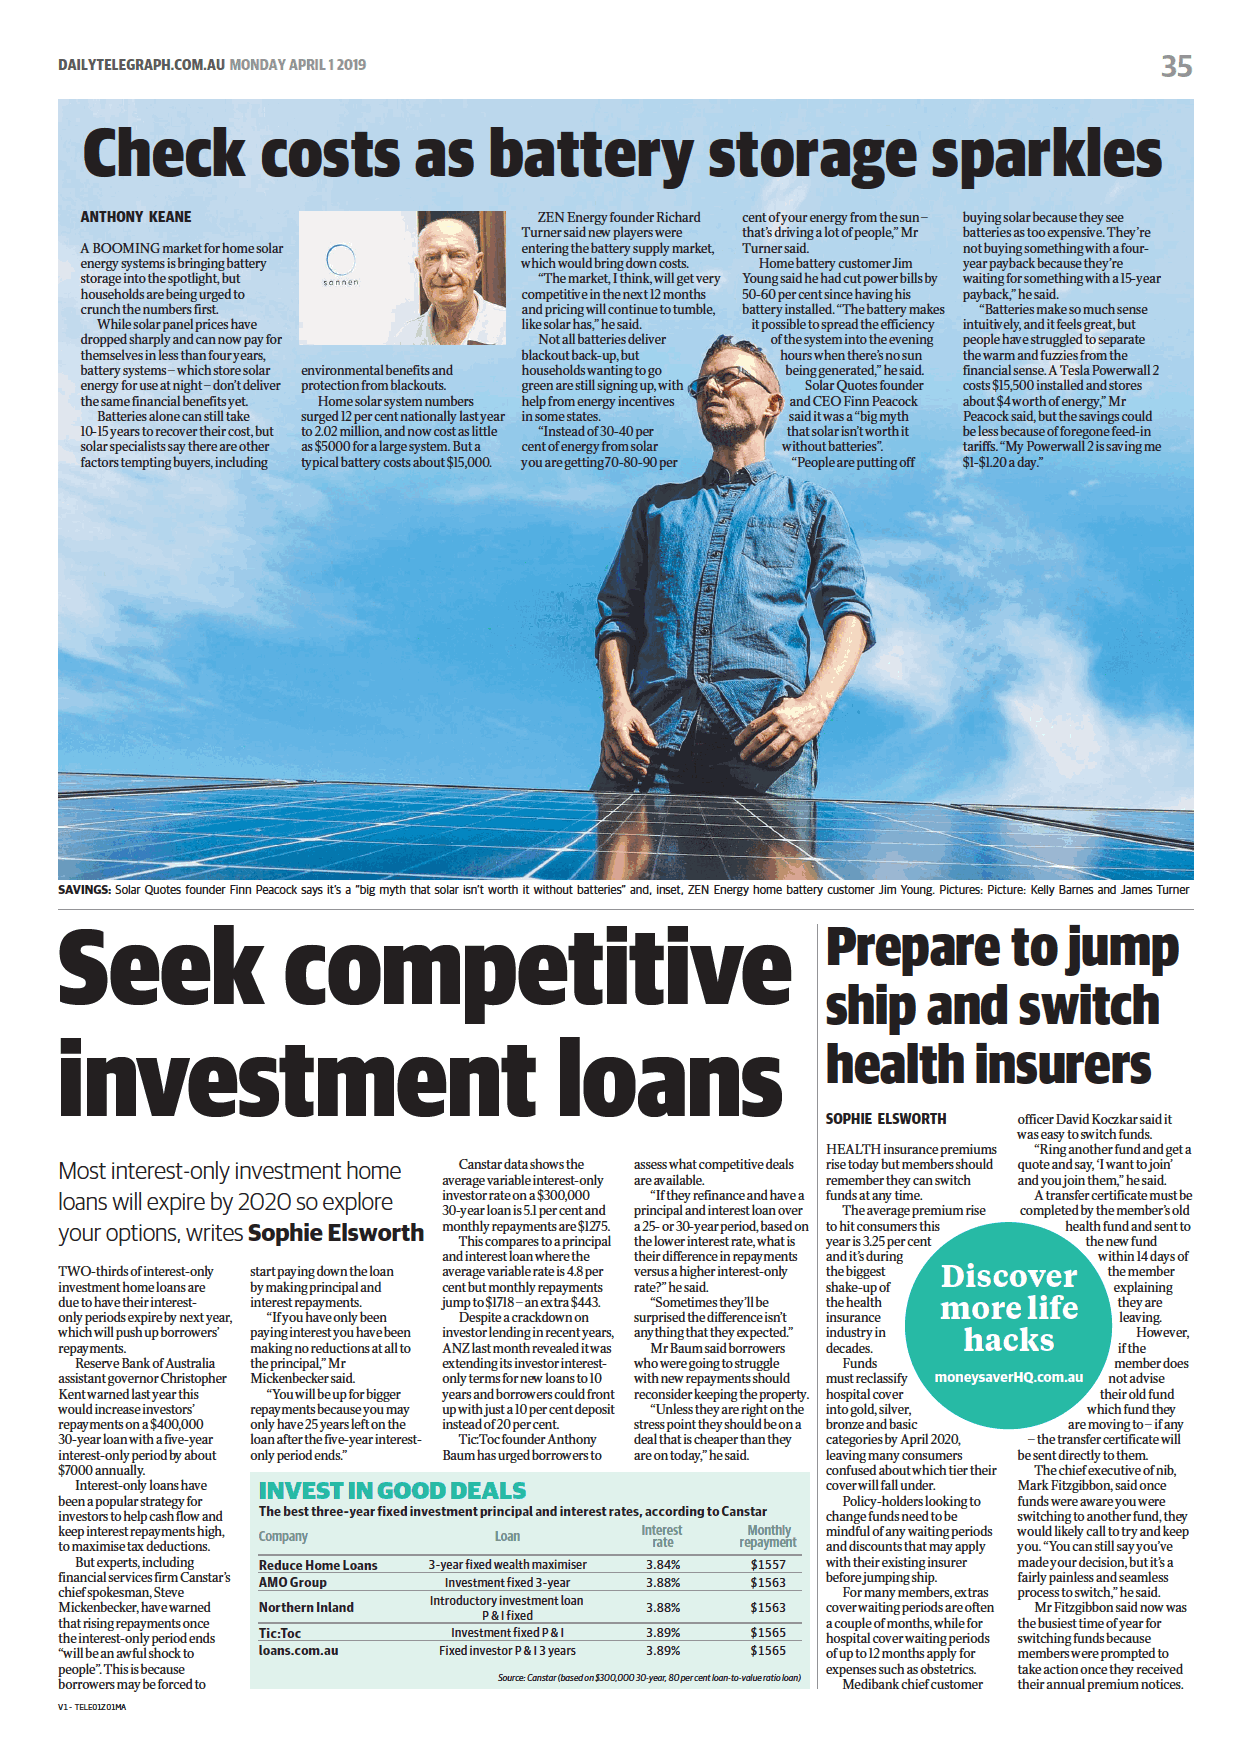 SolarQuotes - The Daily Telegraph MoneySaverHQ 1.png